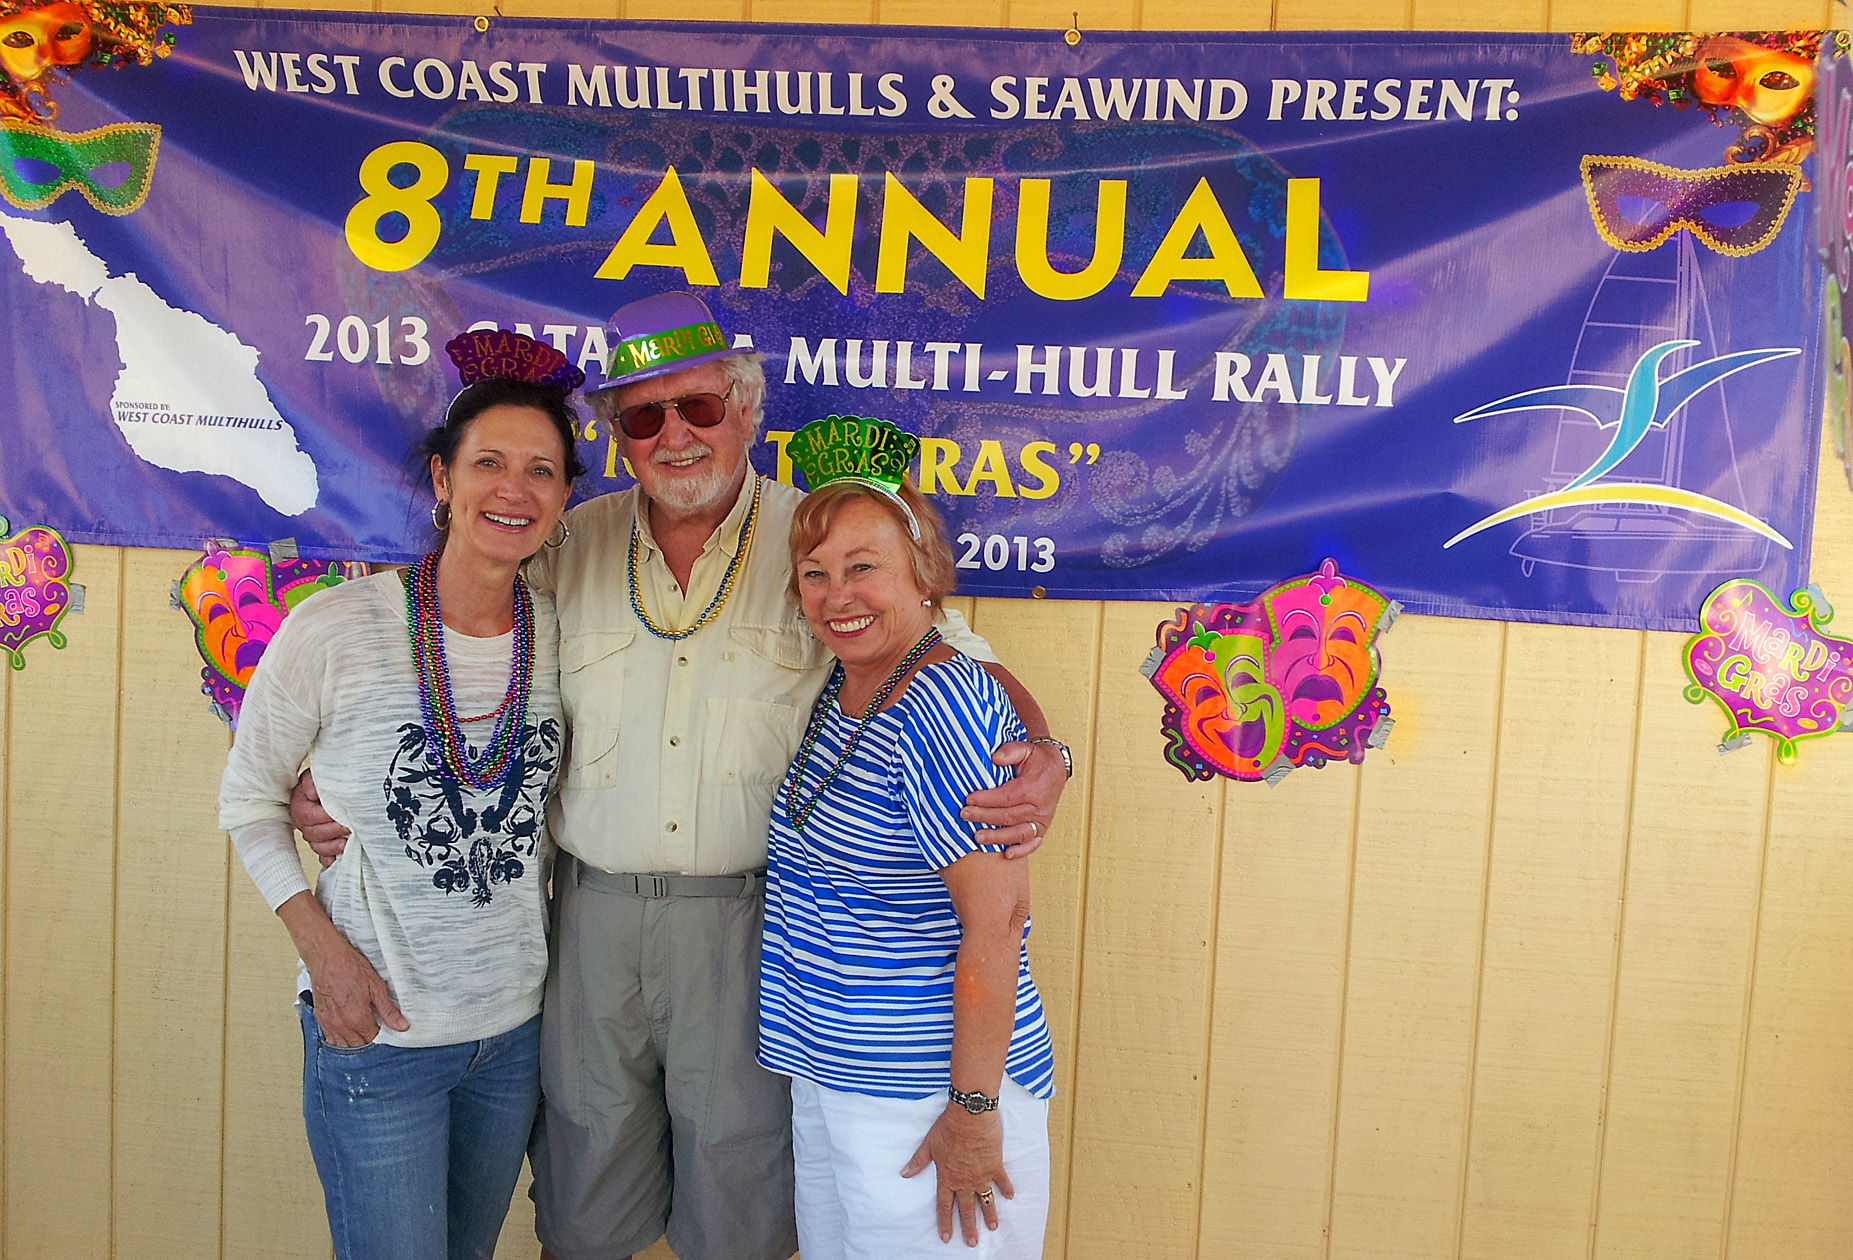 Lori Jerman, Lois Joy Hofmann, and Gunter Hofmann up on the bandstand for the 8th Annual Multihull Rally